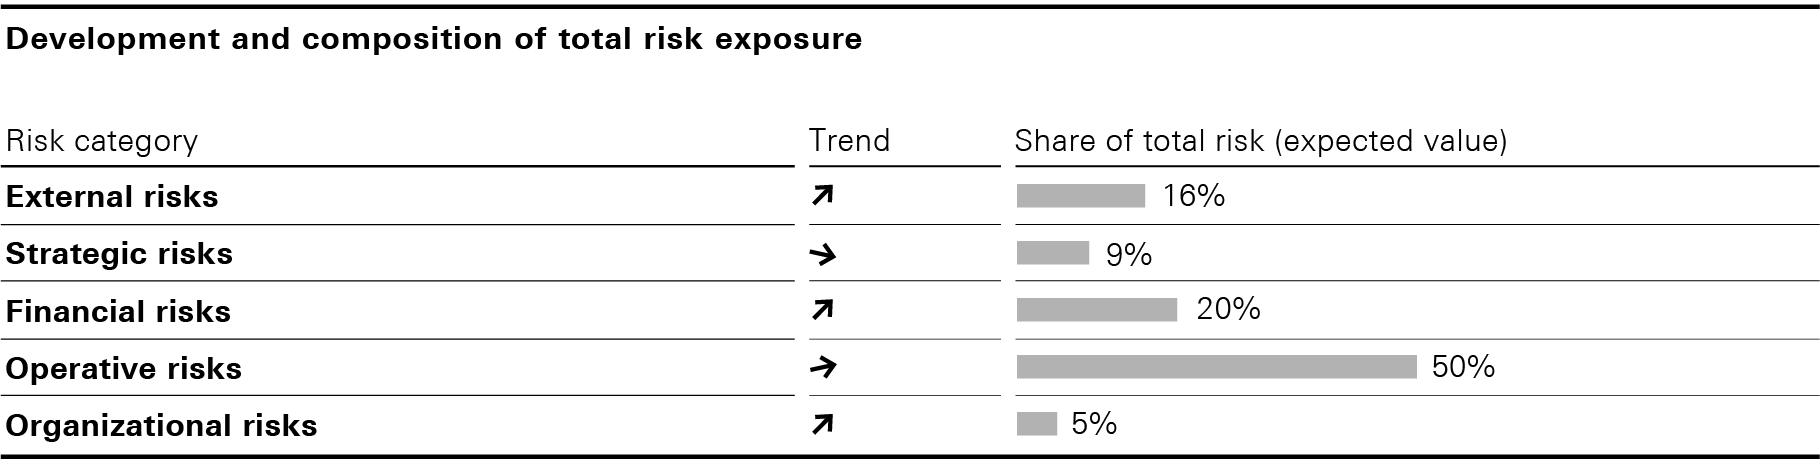 Development and composition of total risk exposure (bar chart)